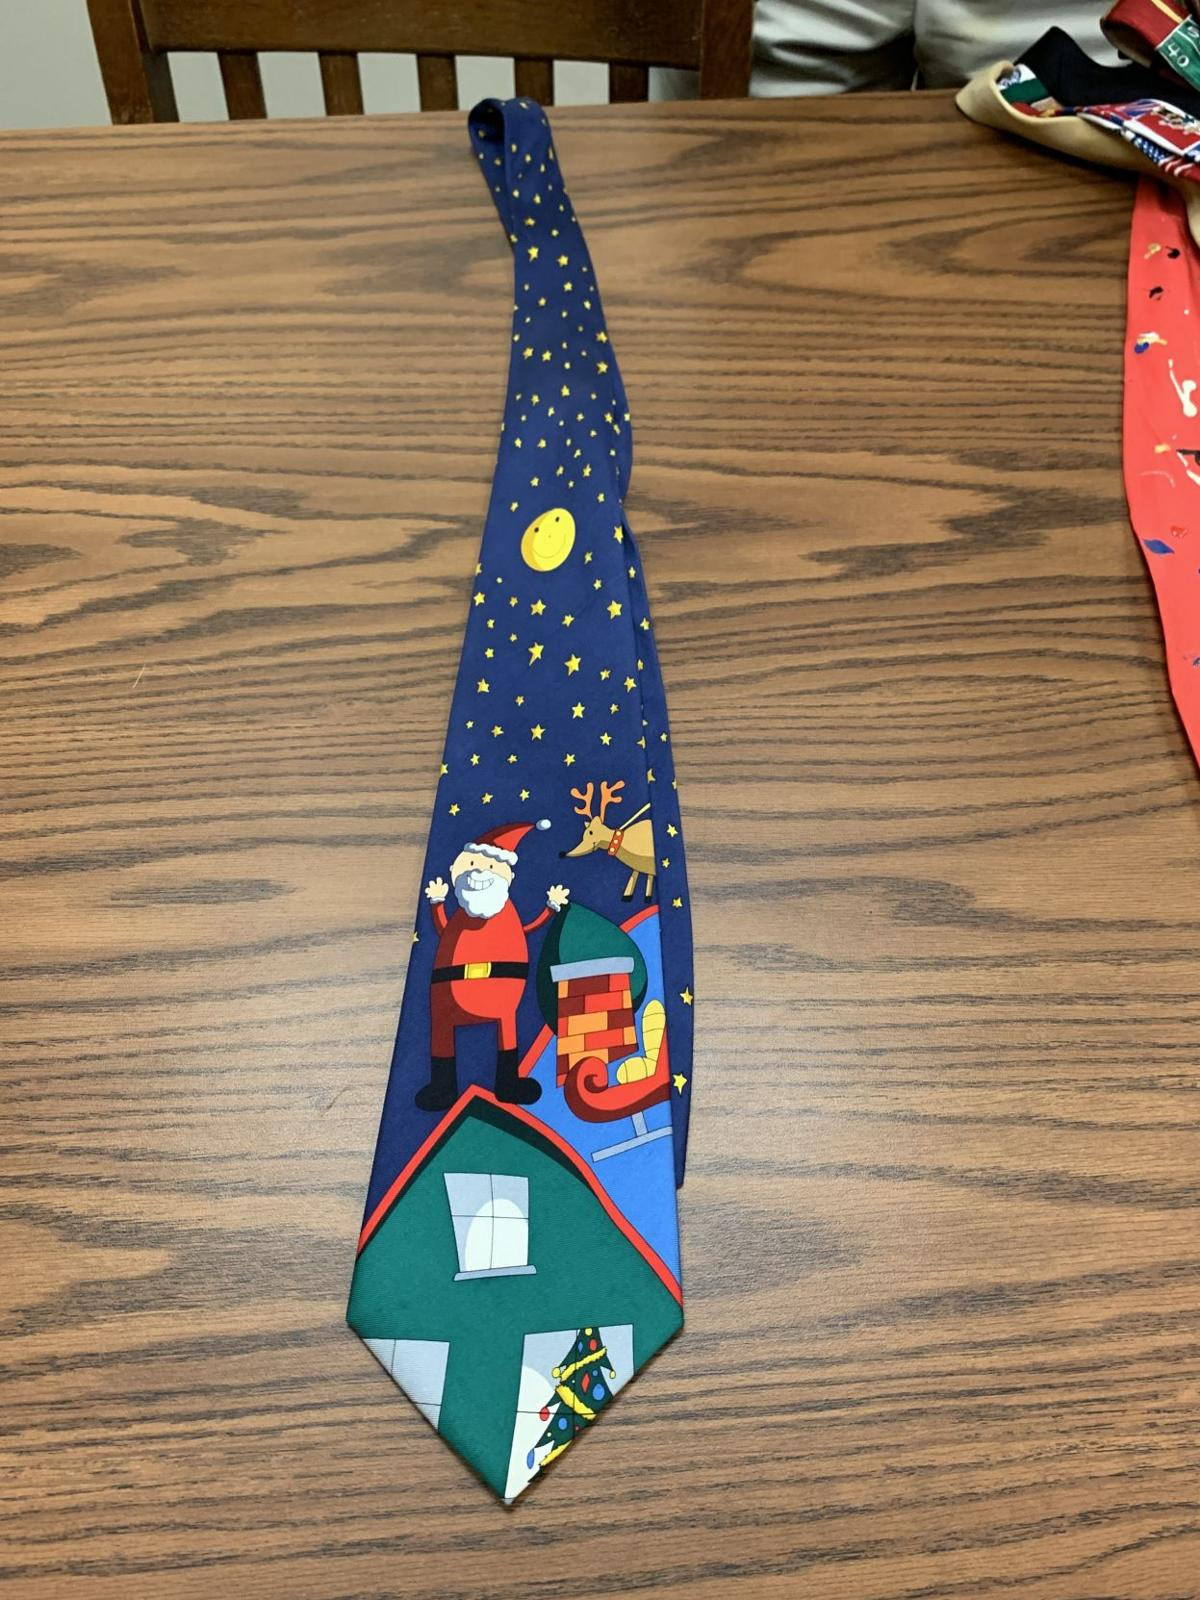 A tie with a Christmas theme.